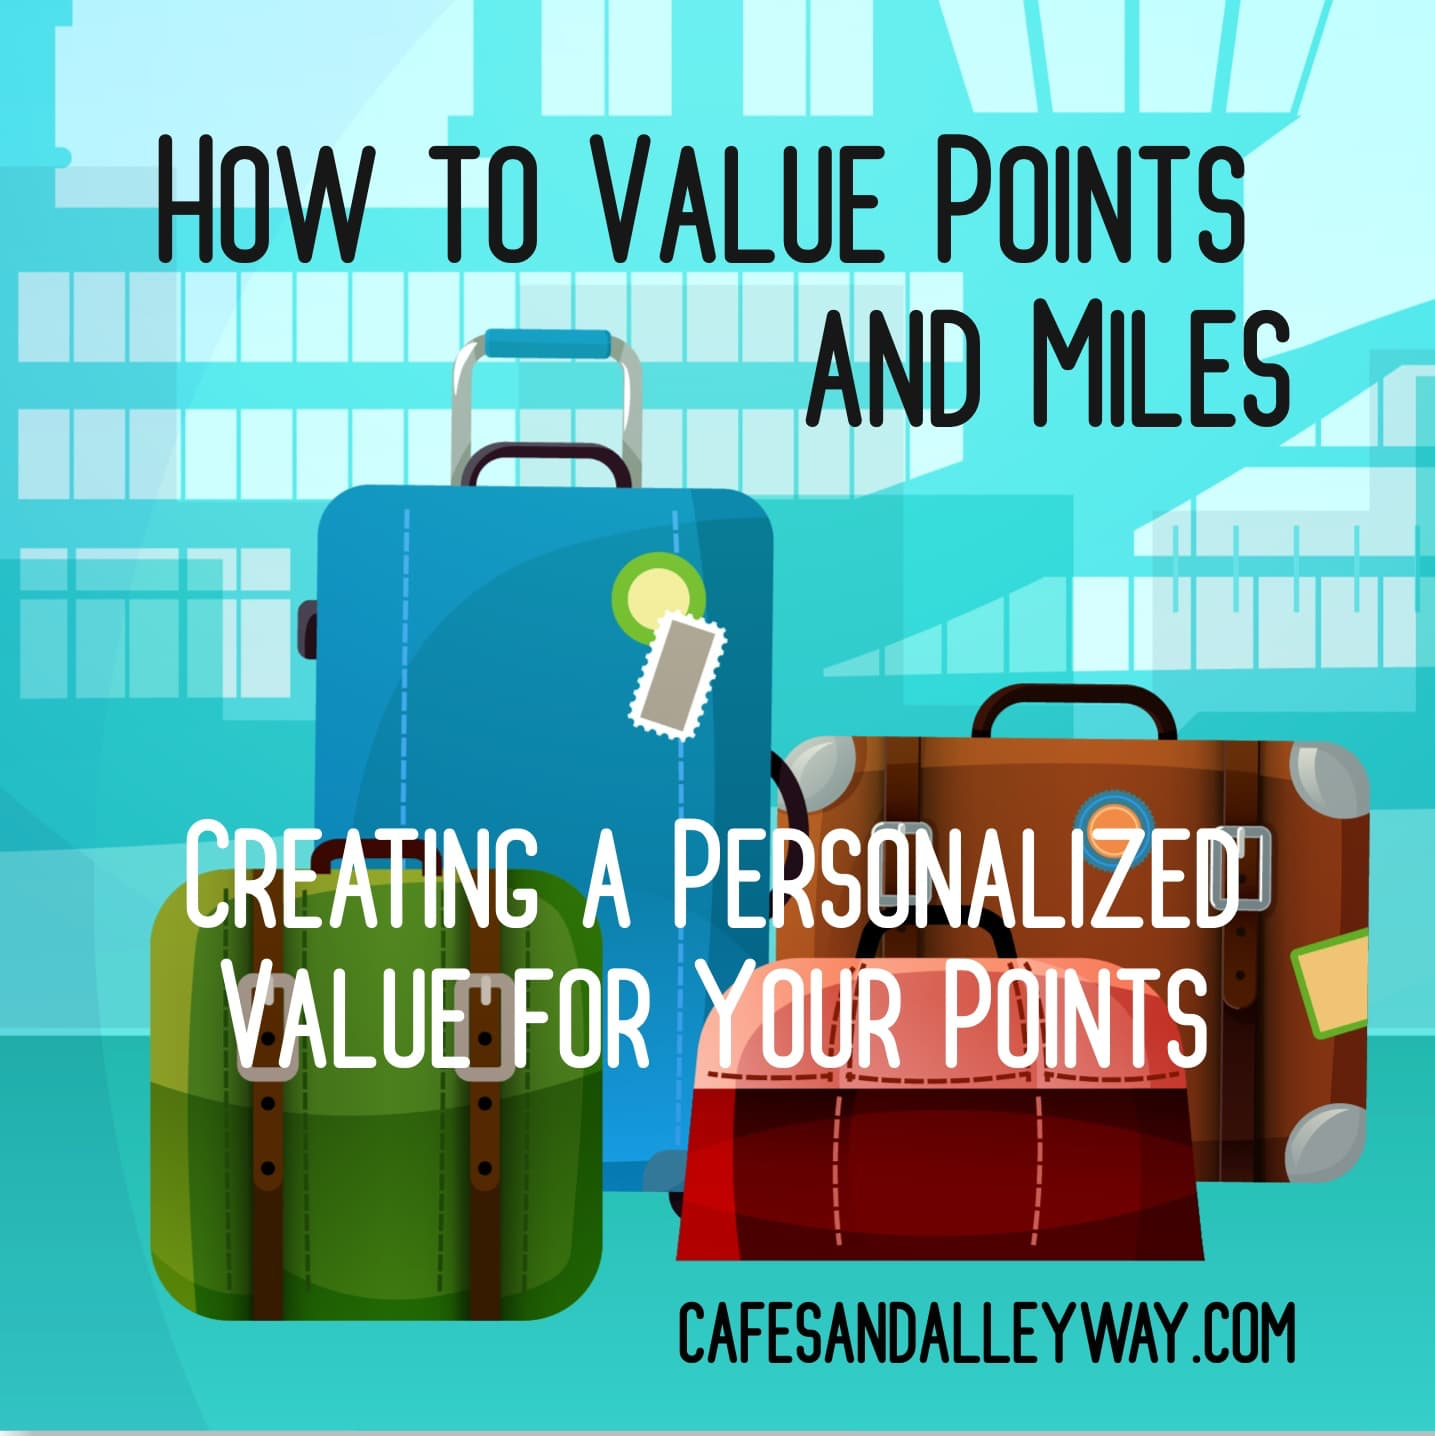 How to Value Points and Miles